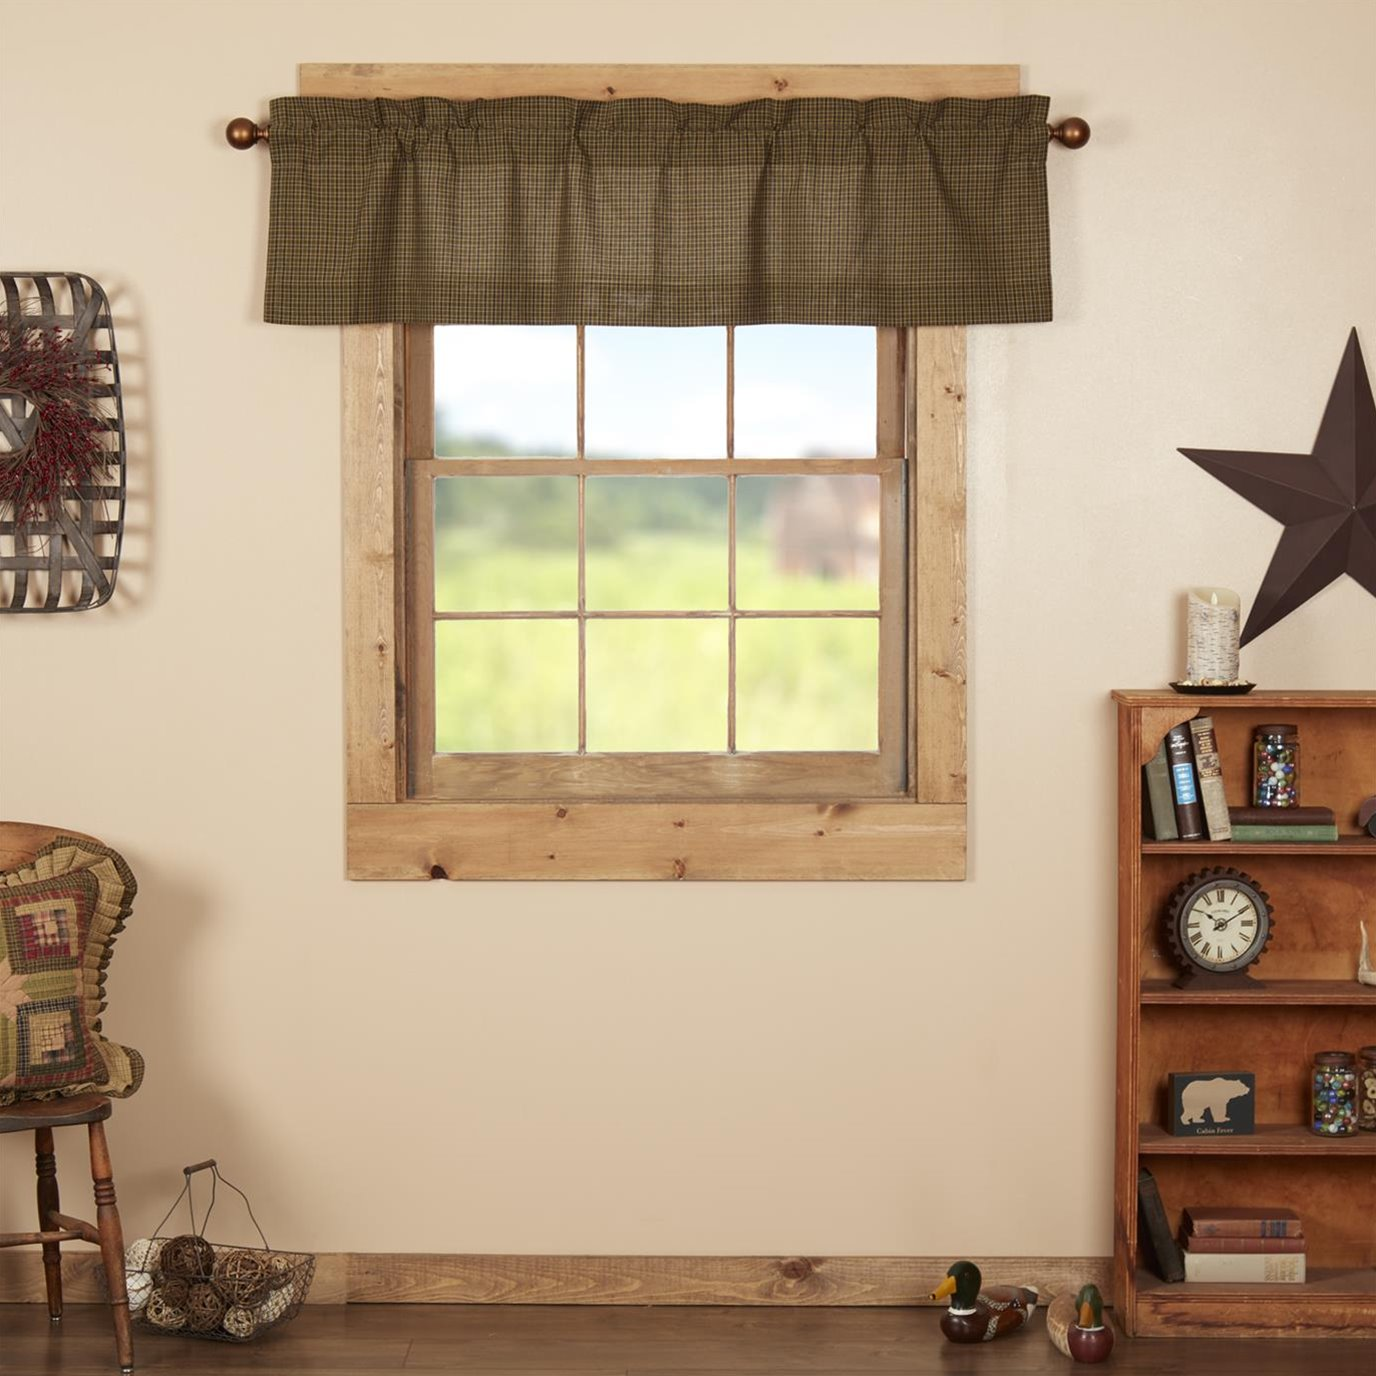 Tea Cabin Green Plaid Valance 16x60